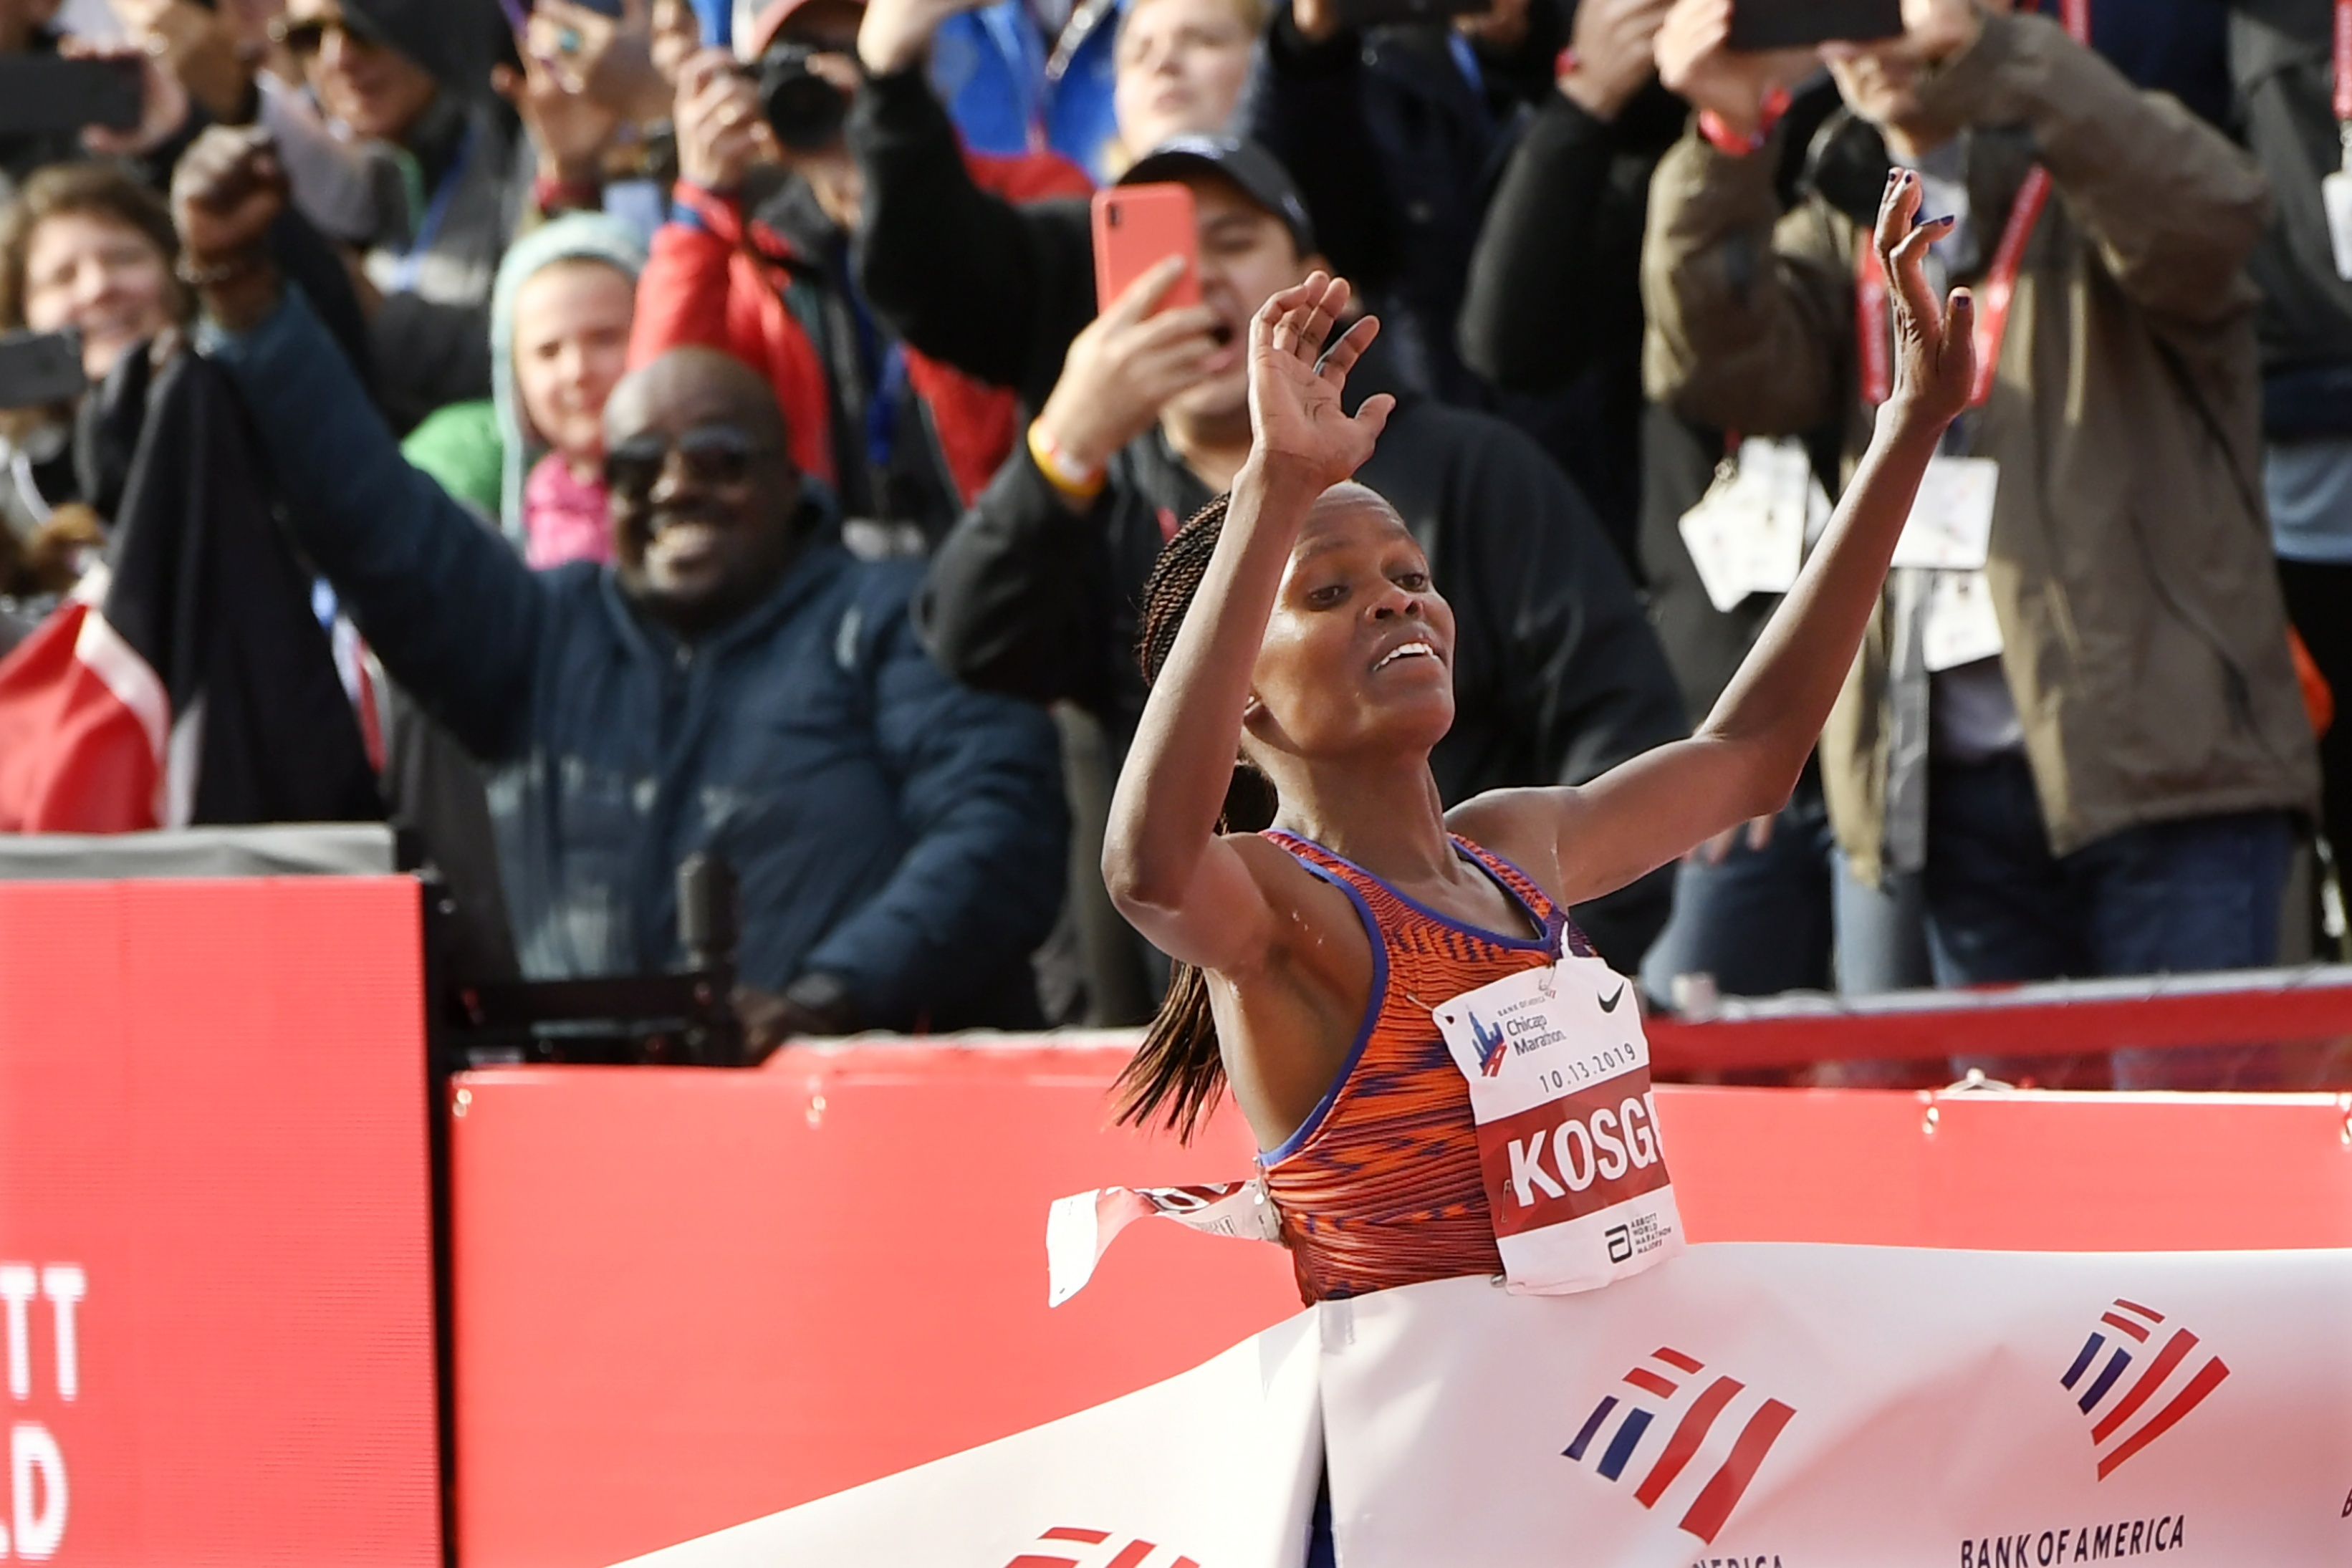 Brigid Kosgei of Kenya, wins the Women's Bank of America Chicago Marathon while setting a world record of 2:14:04 on Sunday, Oct. 13, 2019, in Chicago. (AP Photo/Paul Beaty)